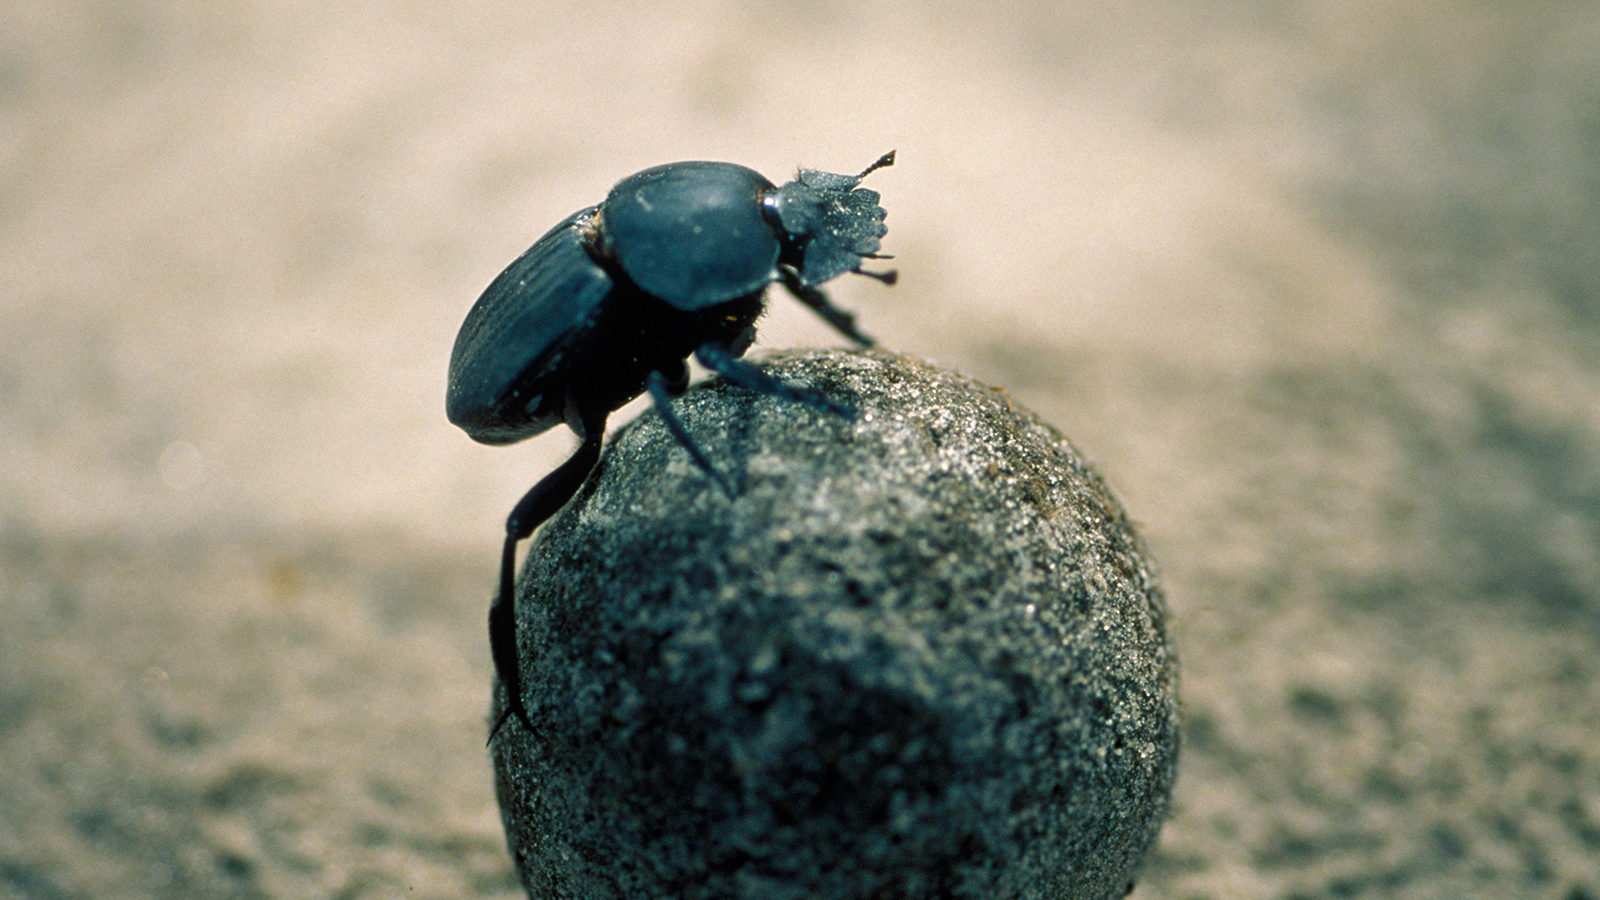 High Resolution Wallpaper | Dung Beetle 1600x900 px